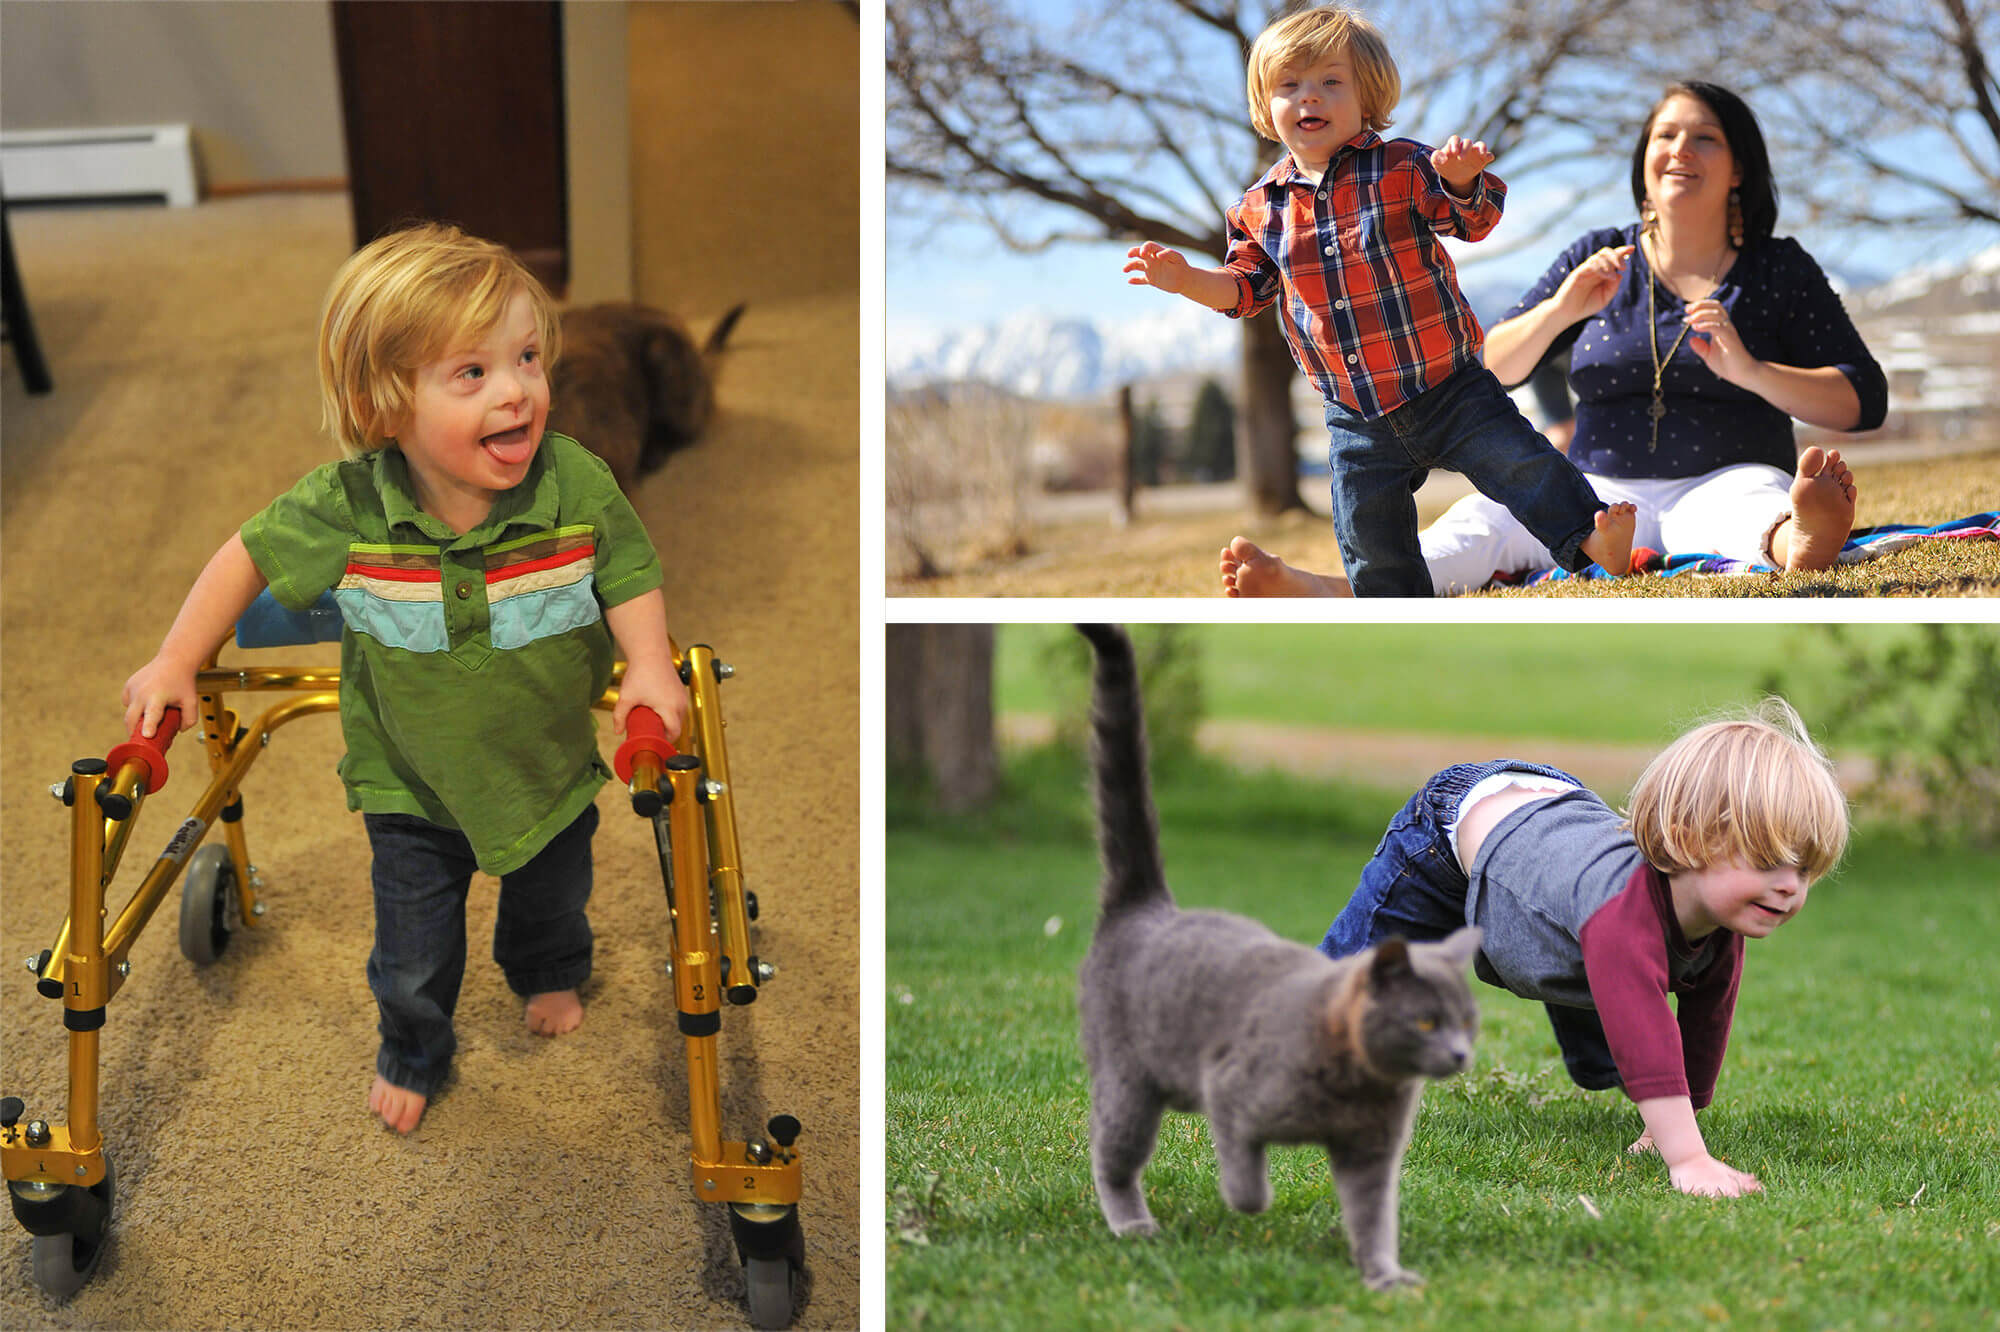 Milestones for child with Down Syndrome